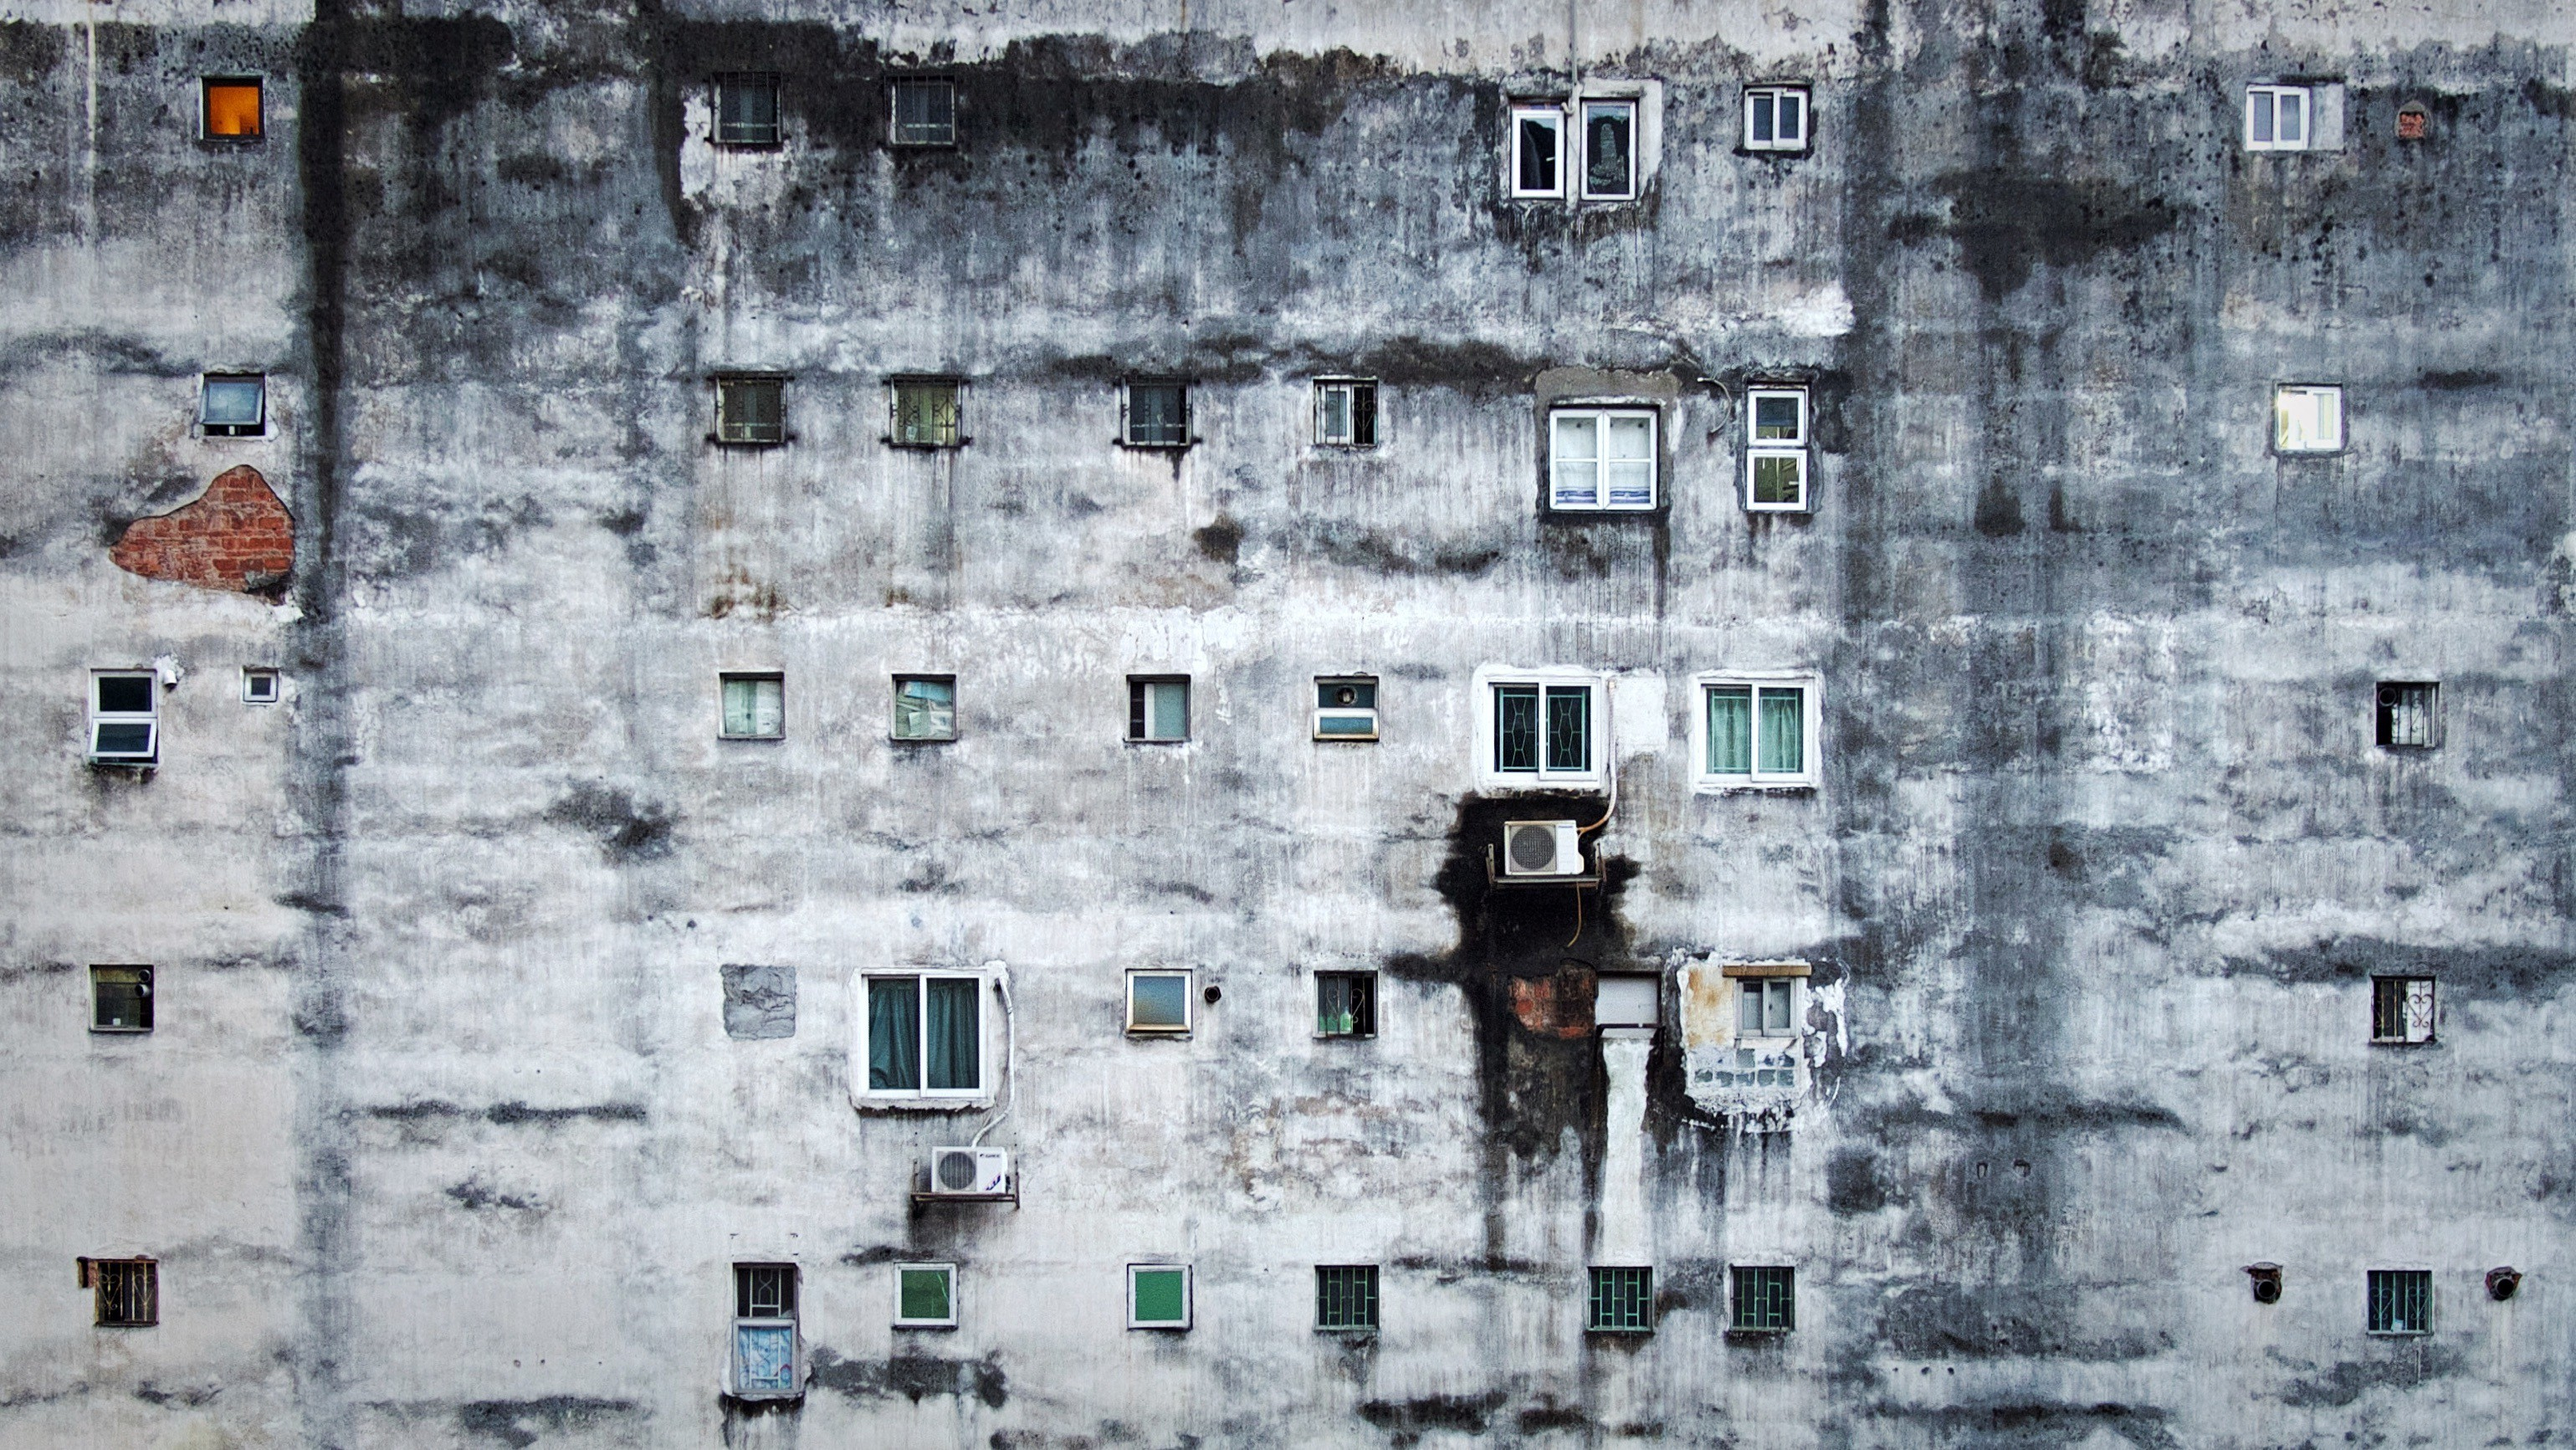 A dirty white wall six stories high which is the side of a run-down apartment building.